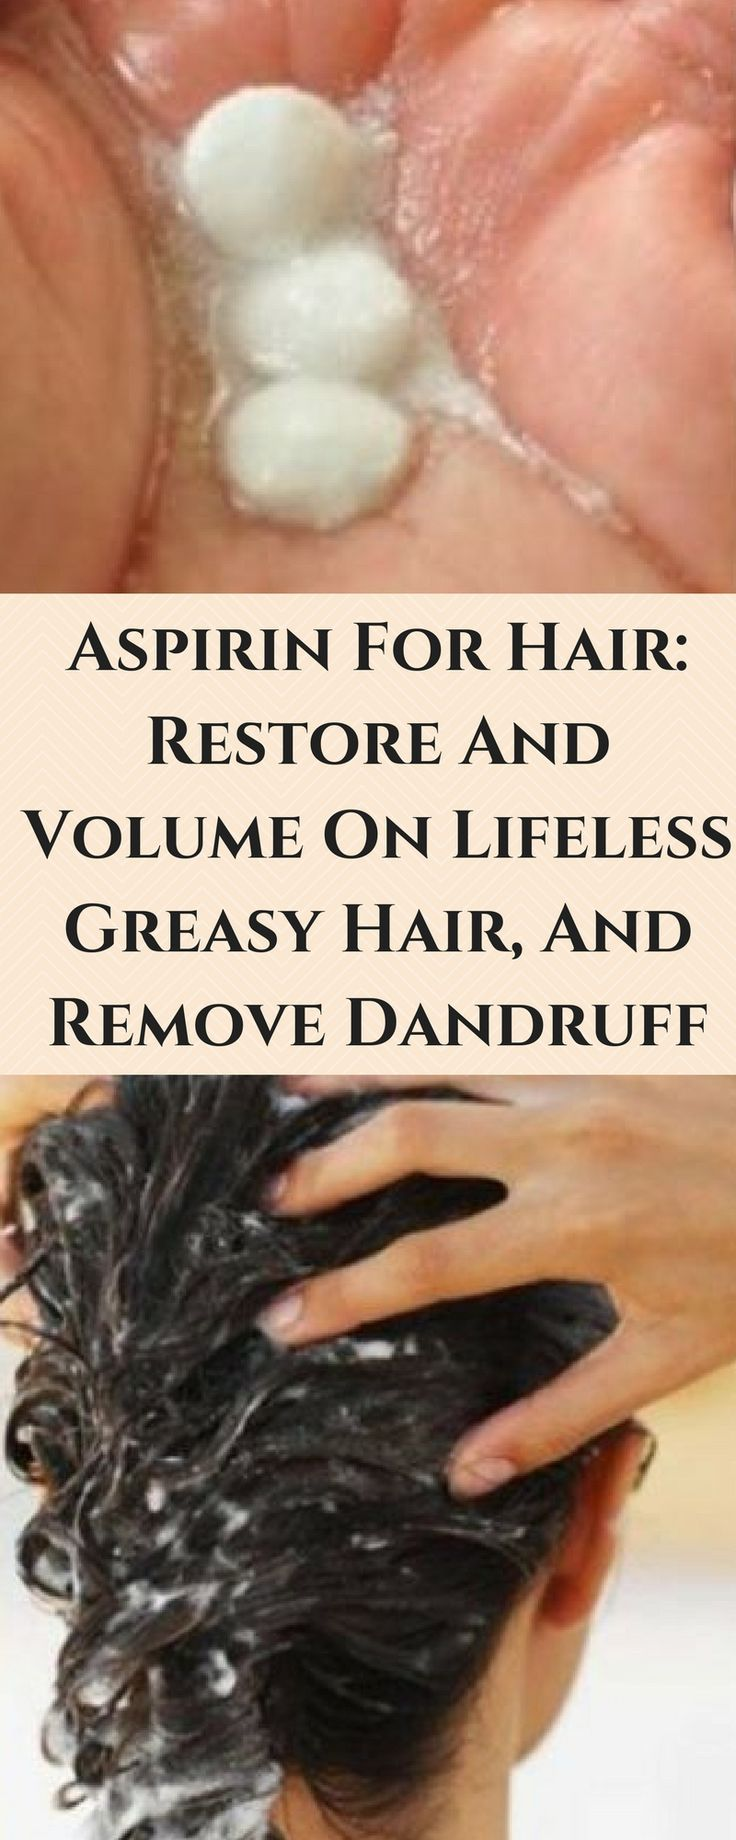 Aspirin For Hair: Restore And Volume On Lifeless Greasy Hair, And Remove Dandruff